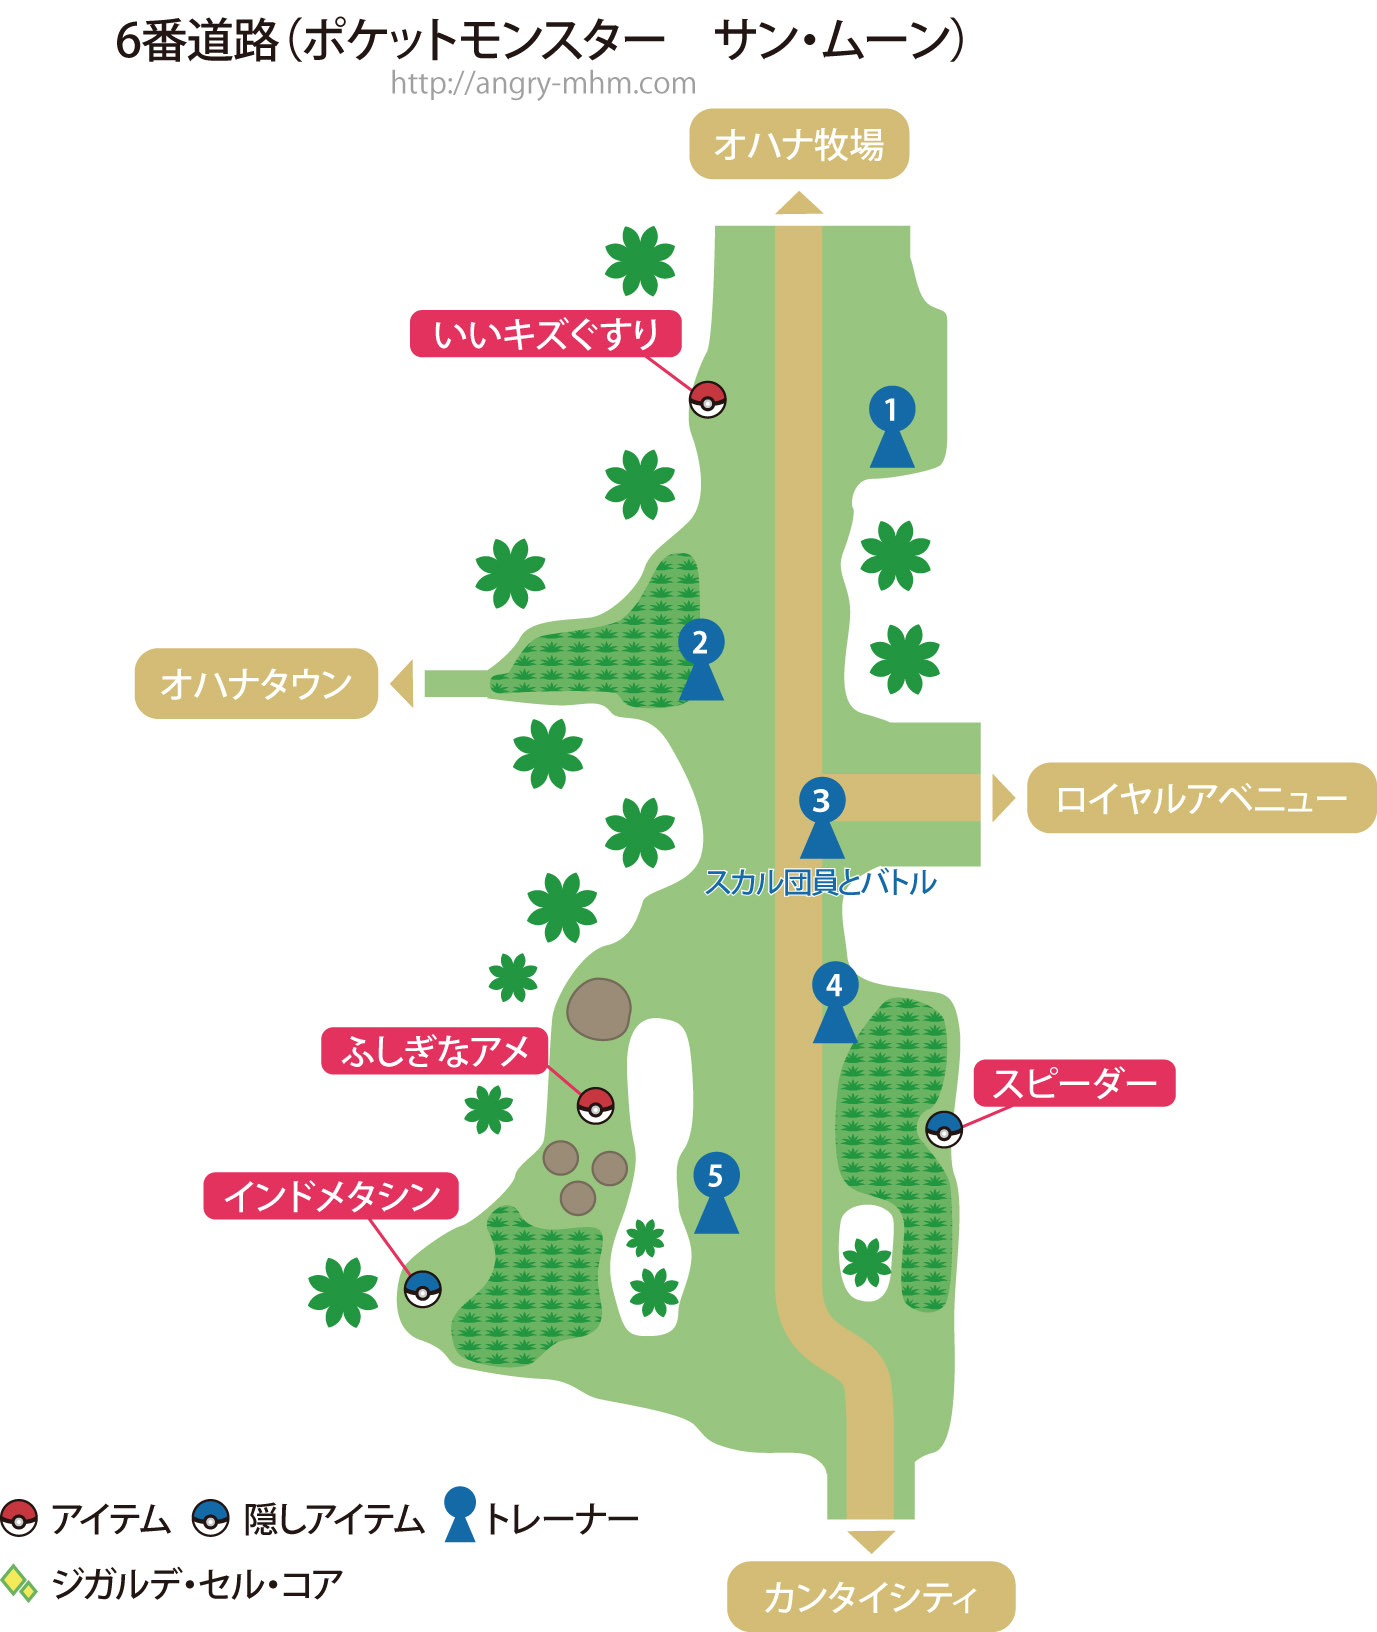 map-route-6